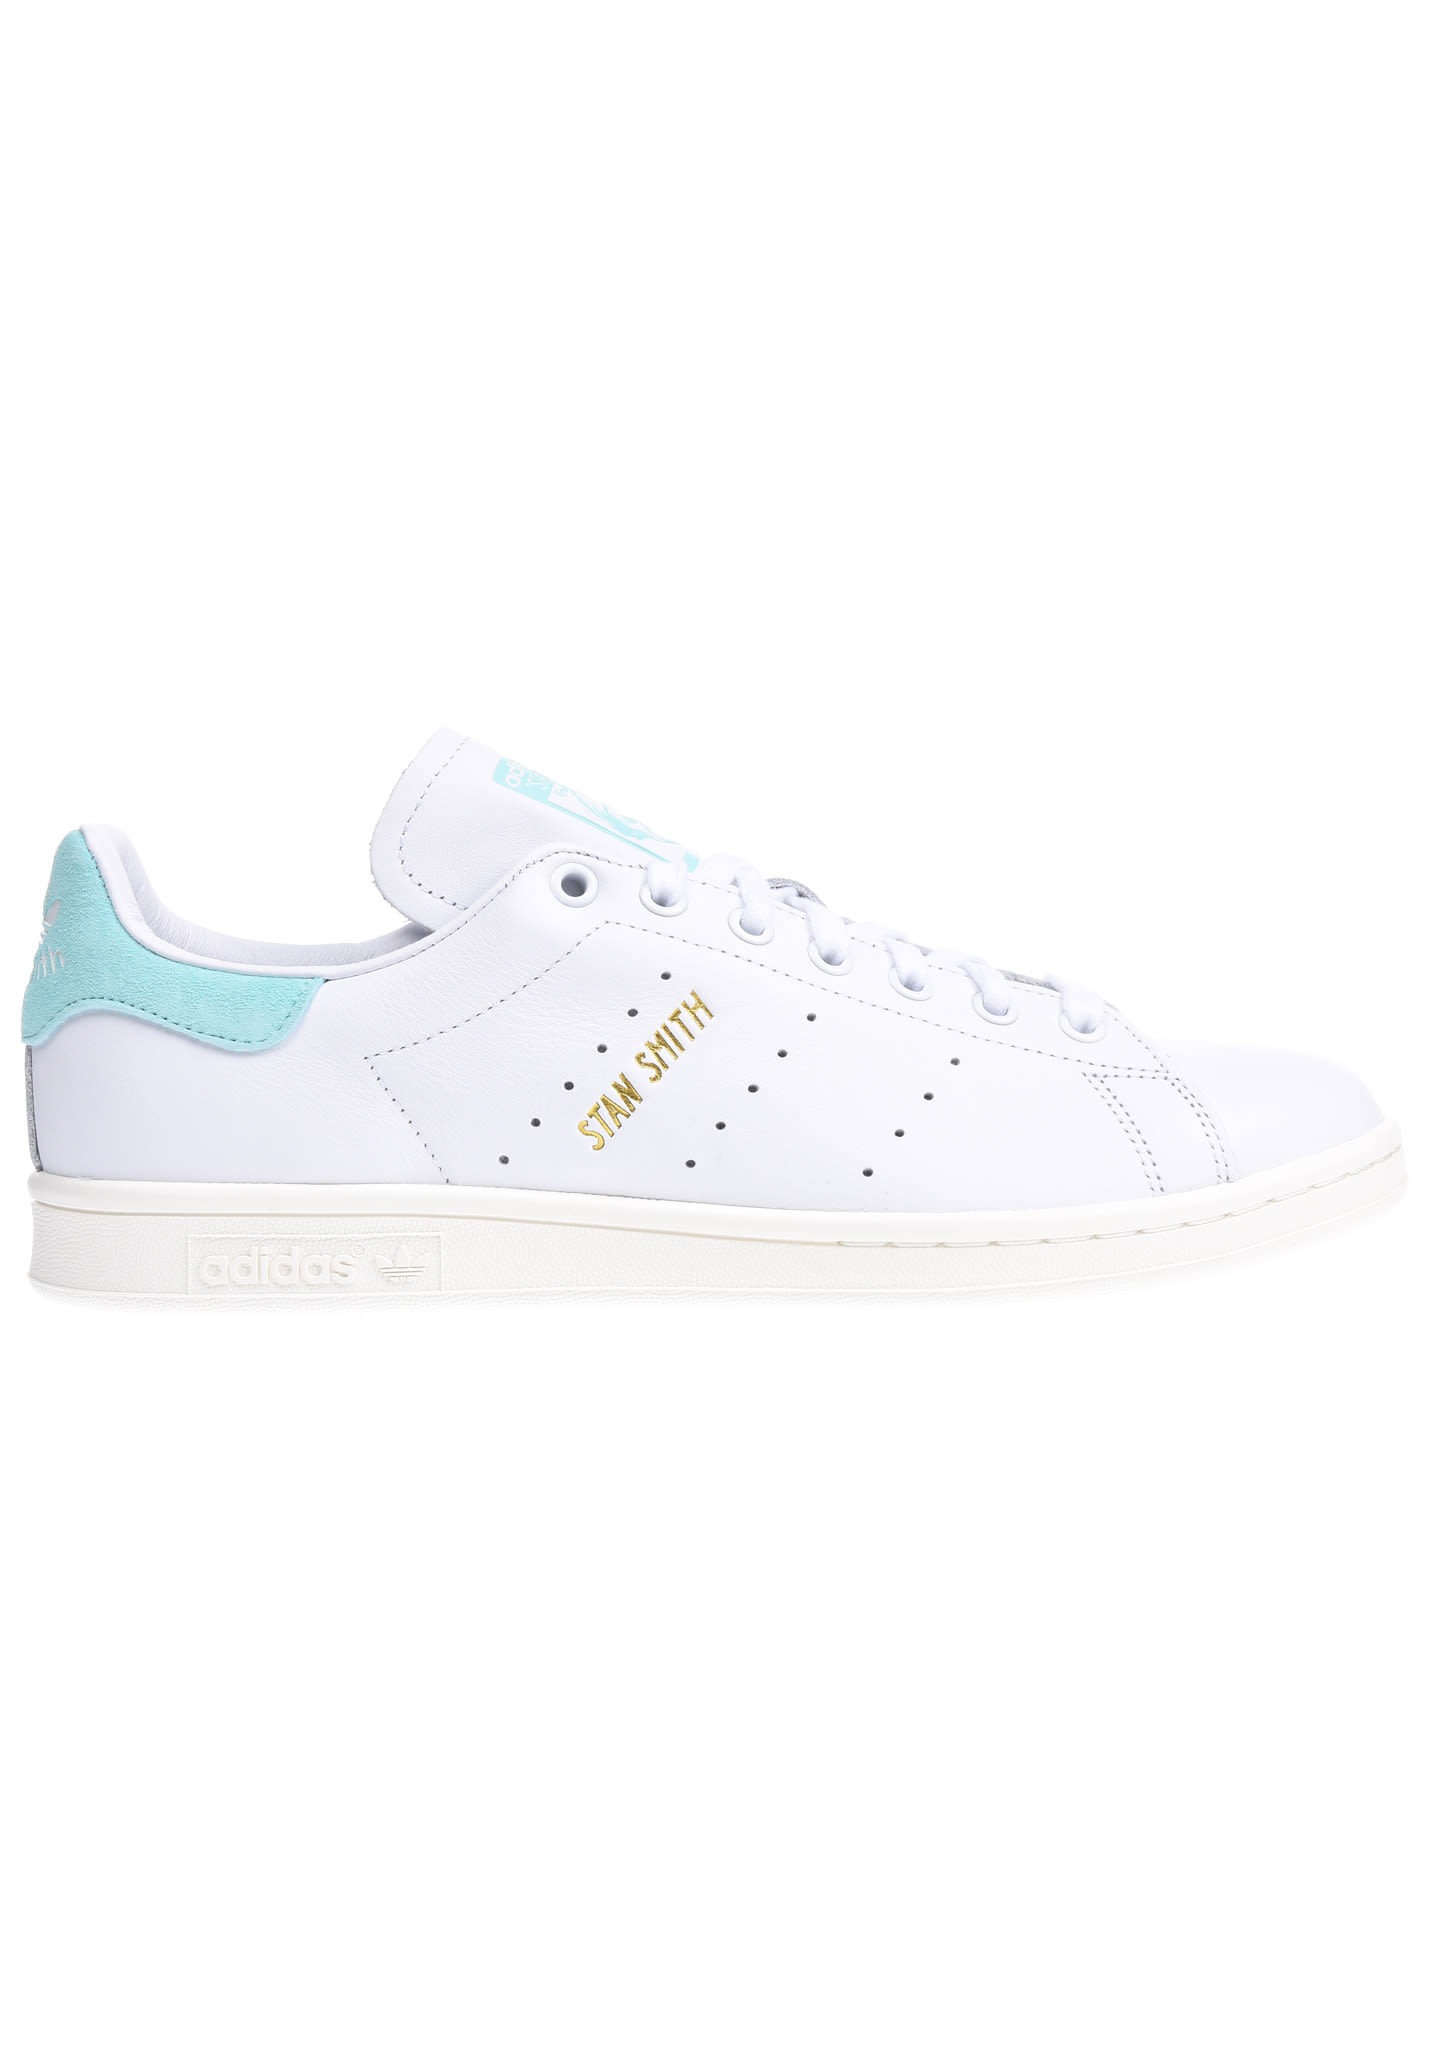 8c3aabdbf4e ADIDAS ORIGINALS Stan Smith - Sneakers - Wit - Planet Sports